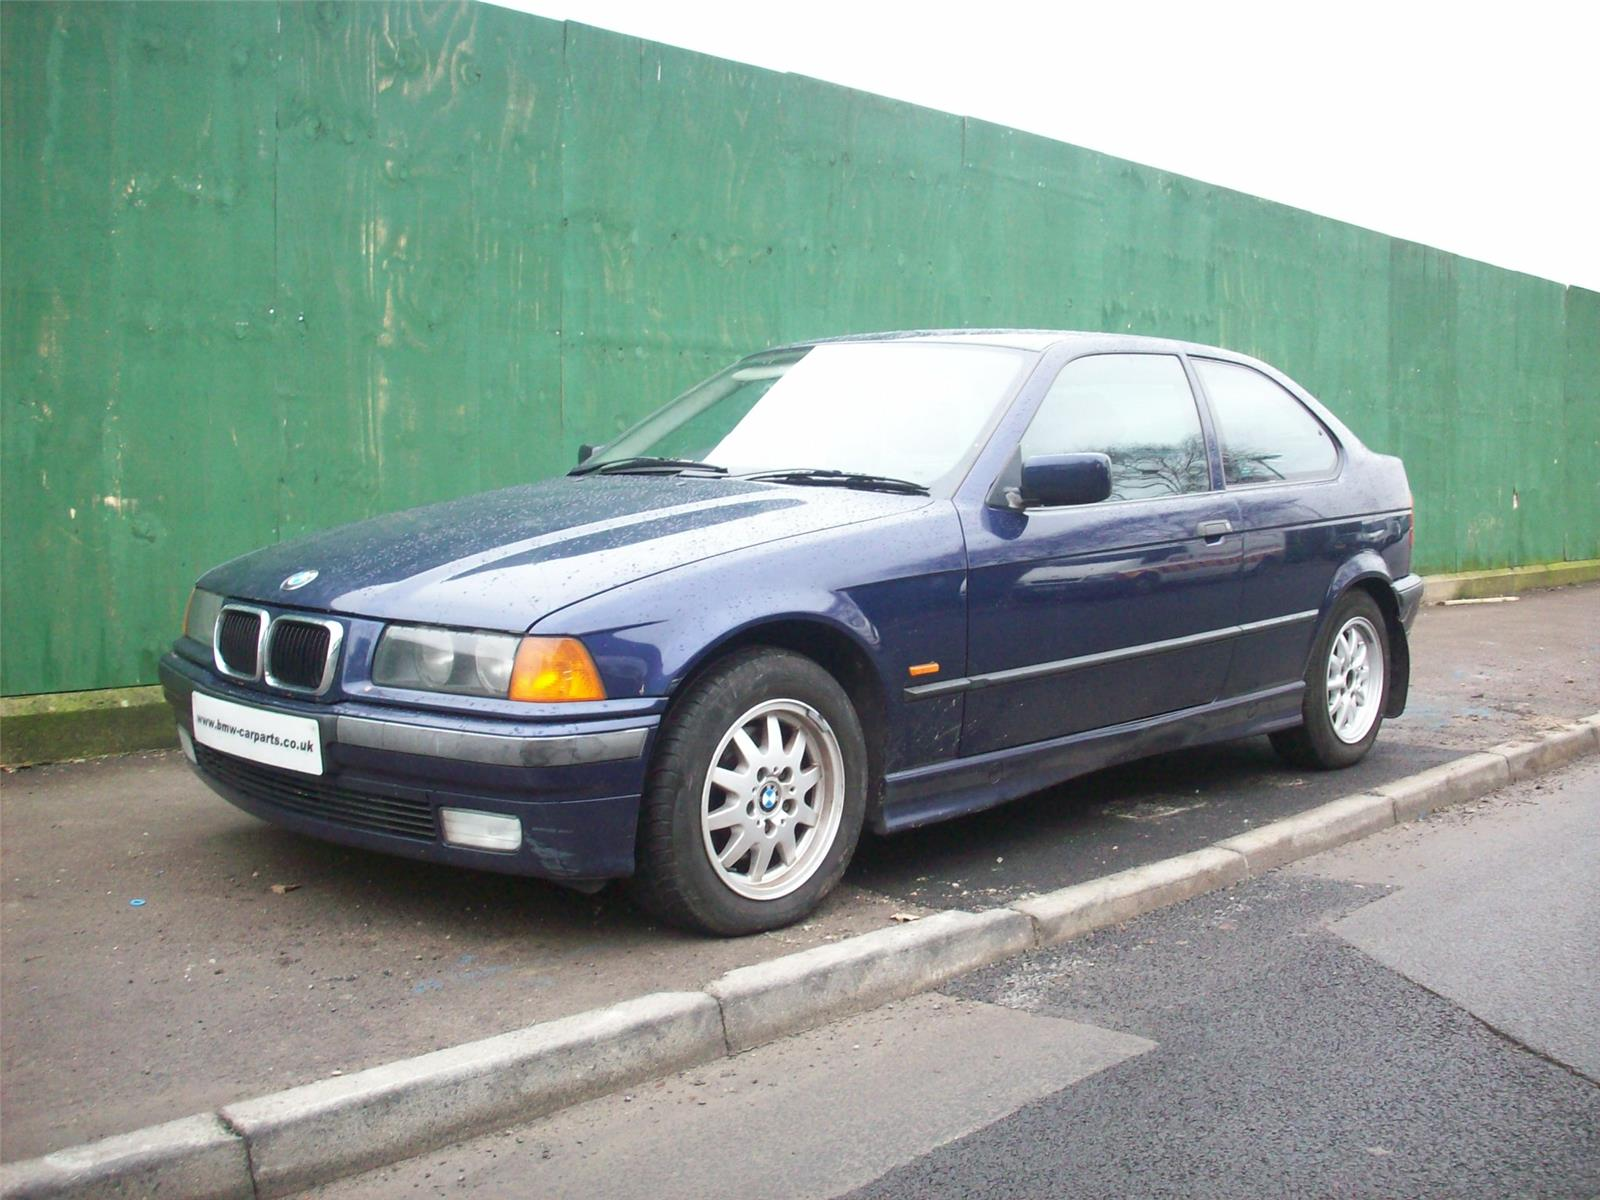 2000 bmw 3 series 316i se compact 3 door hatchback petrol. Black Bedroom Furniture Sets. Home Design Ideas